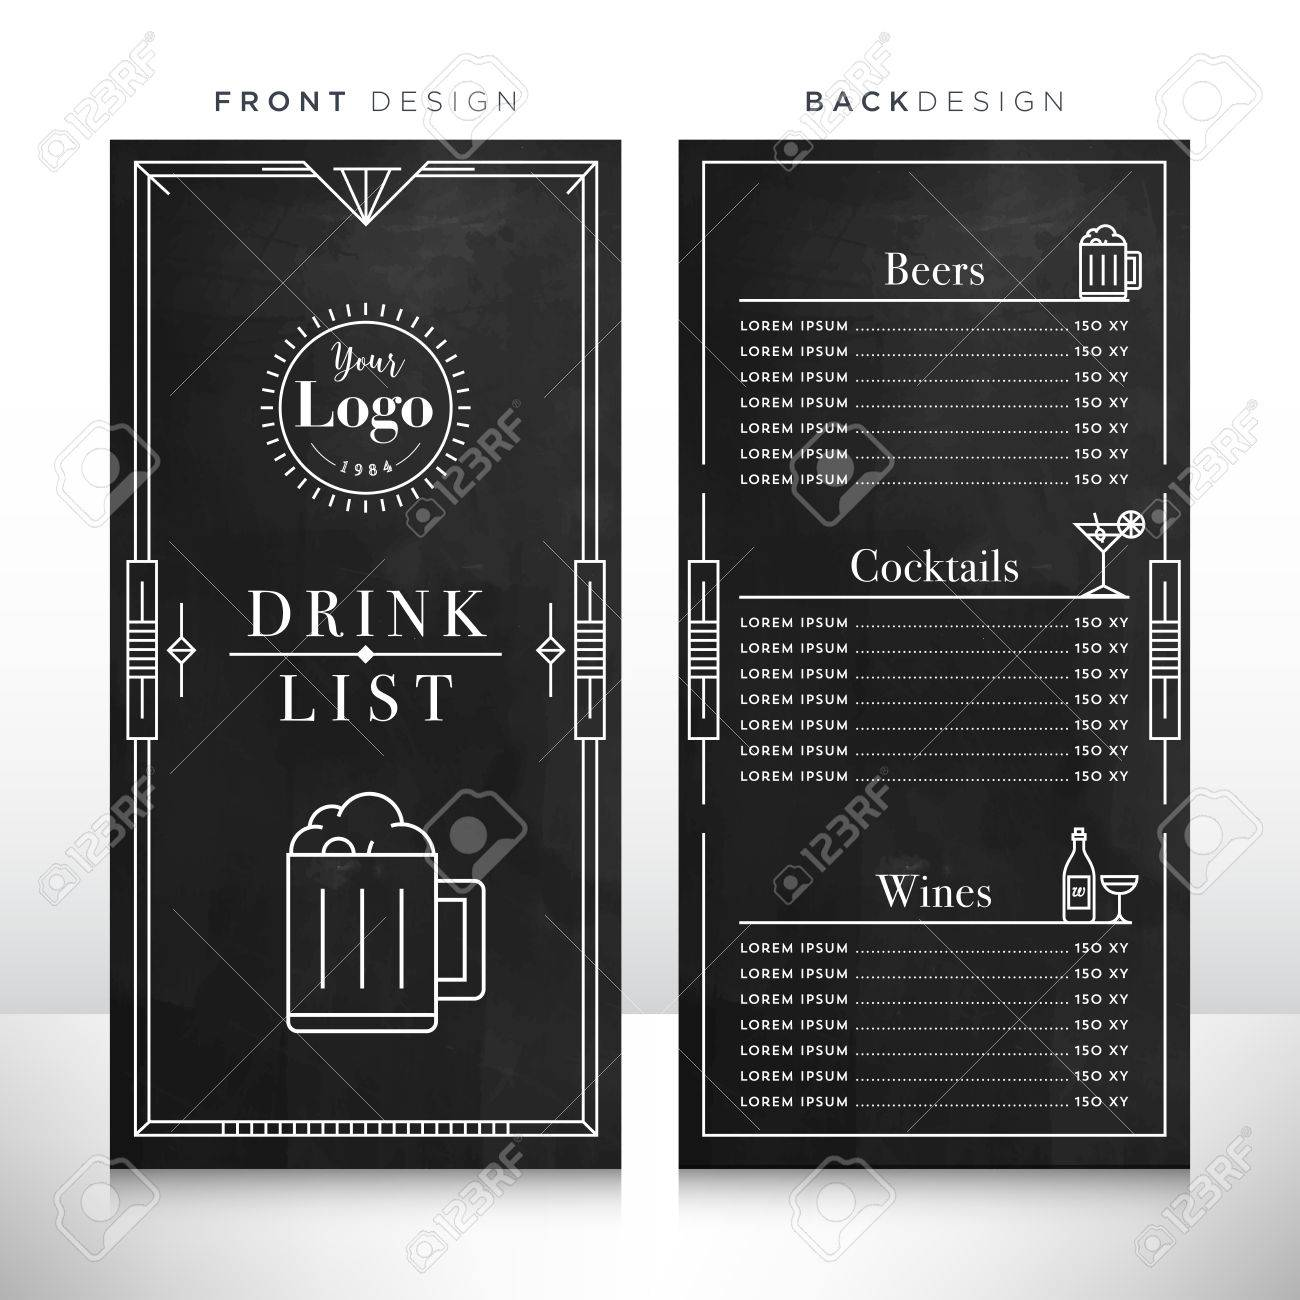 drink list menu design template royalty free cliparts, vectors, and